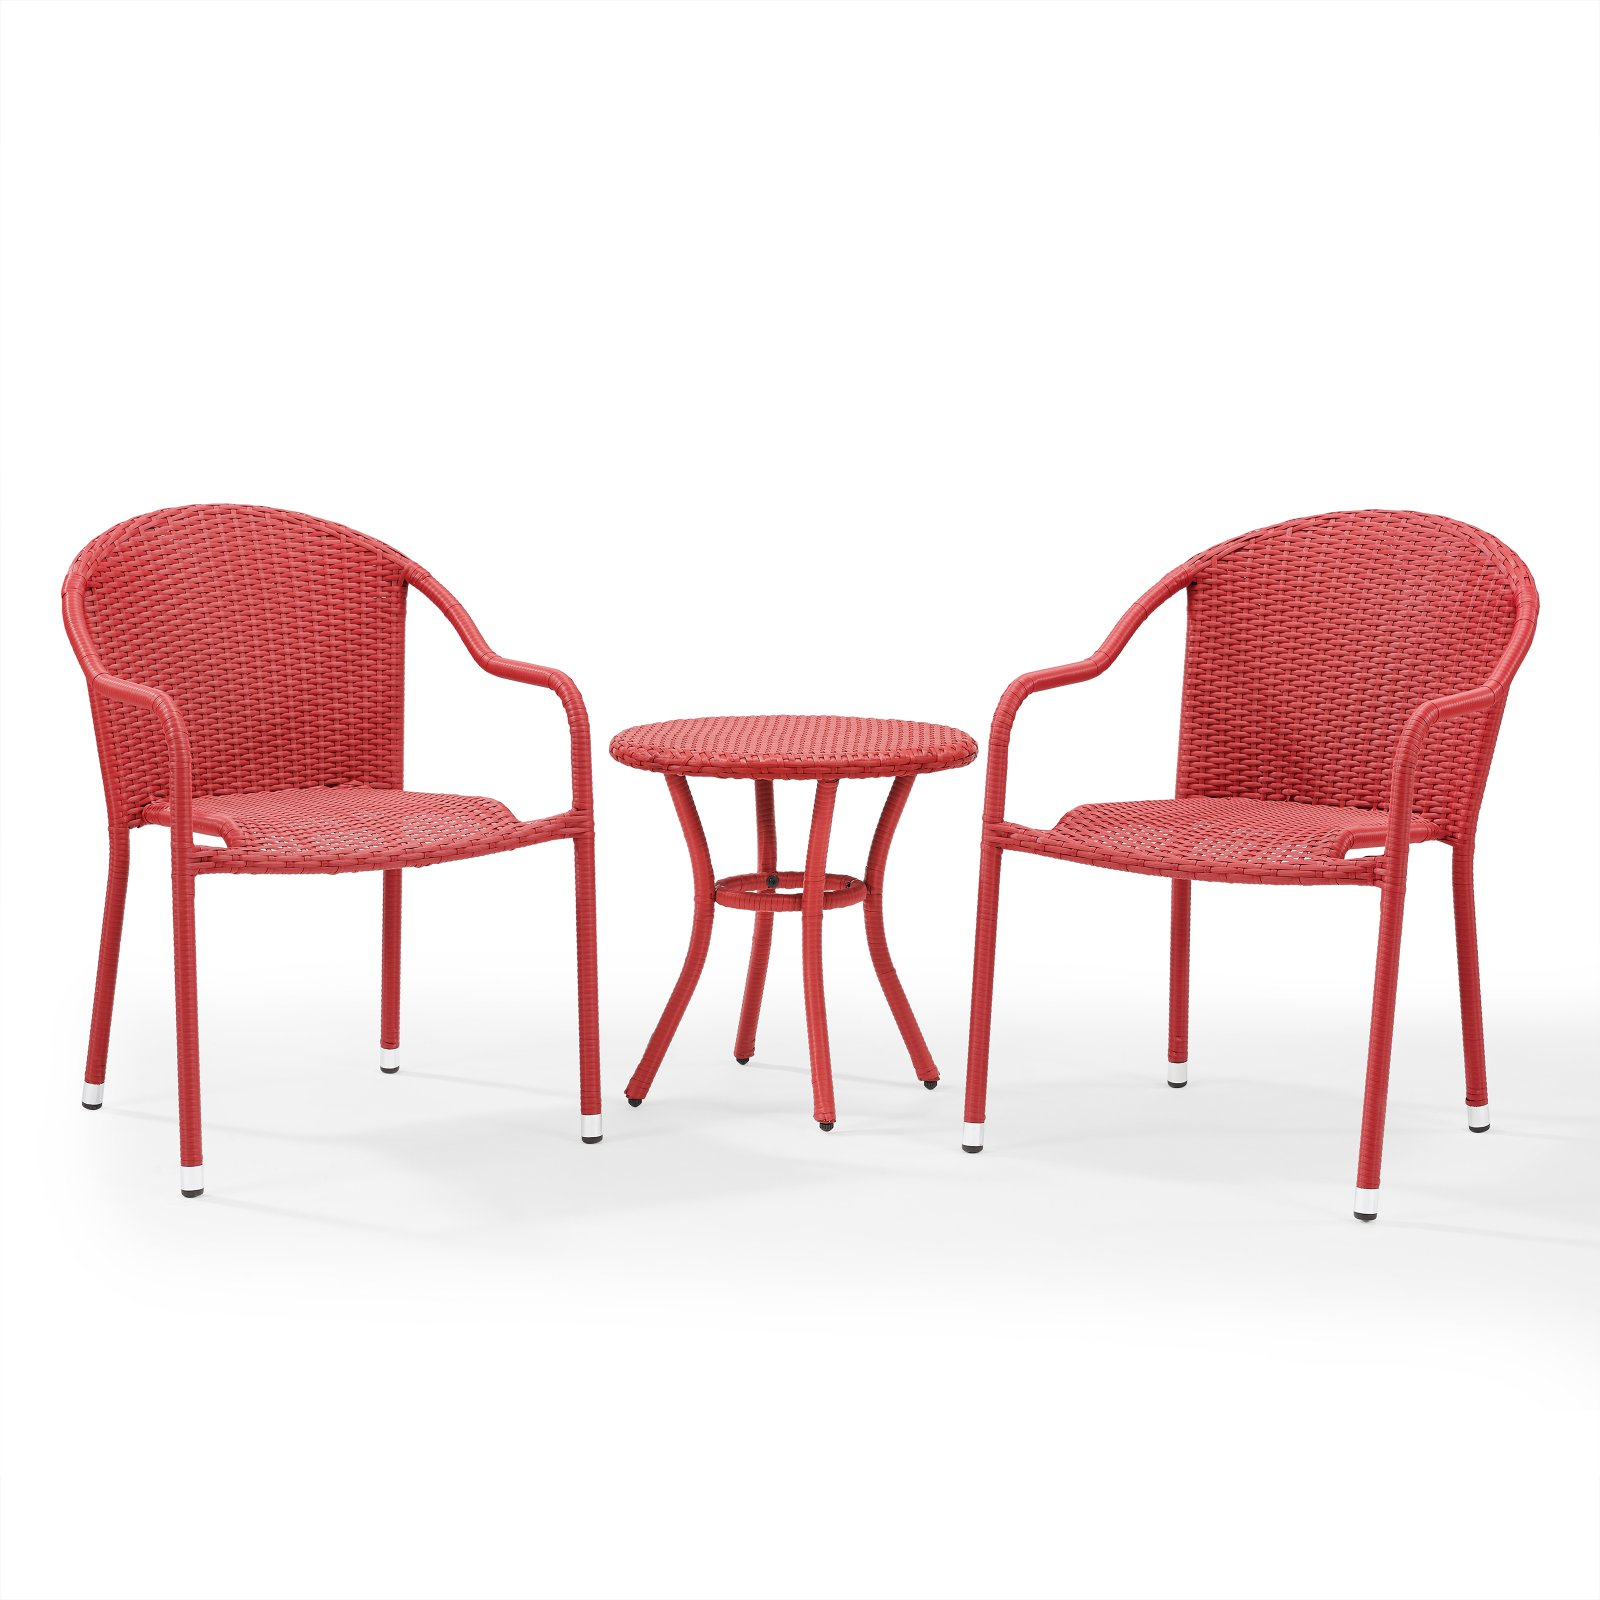 Crosley Palm Harbor Outdoor Wicker Cafe Seating Set, 3-Piece